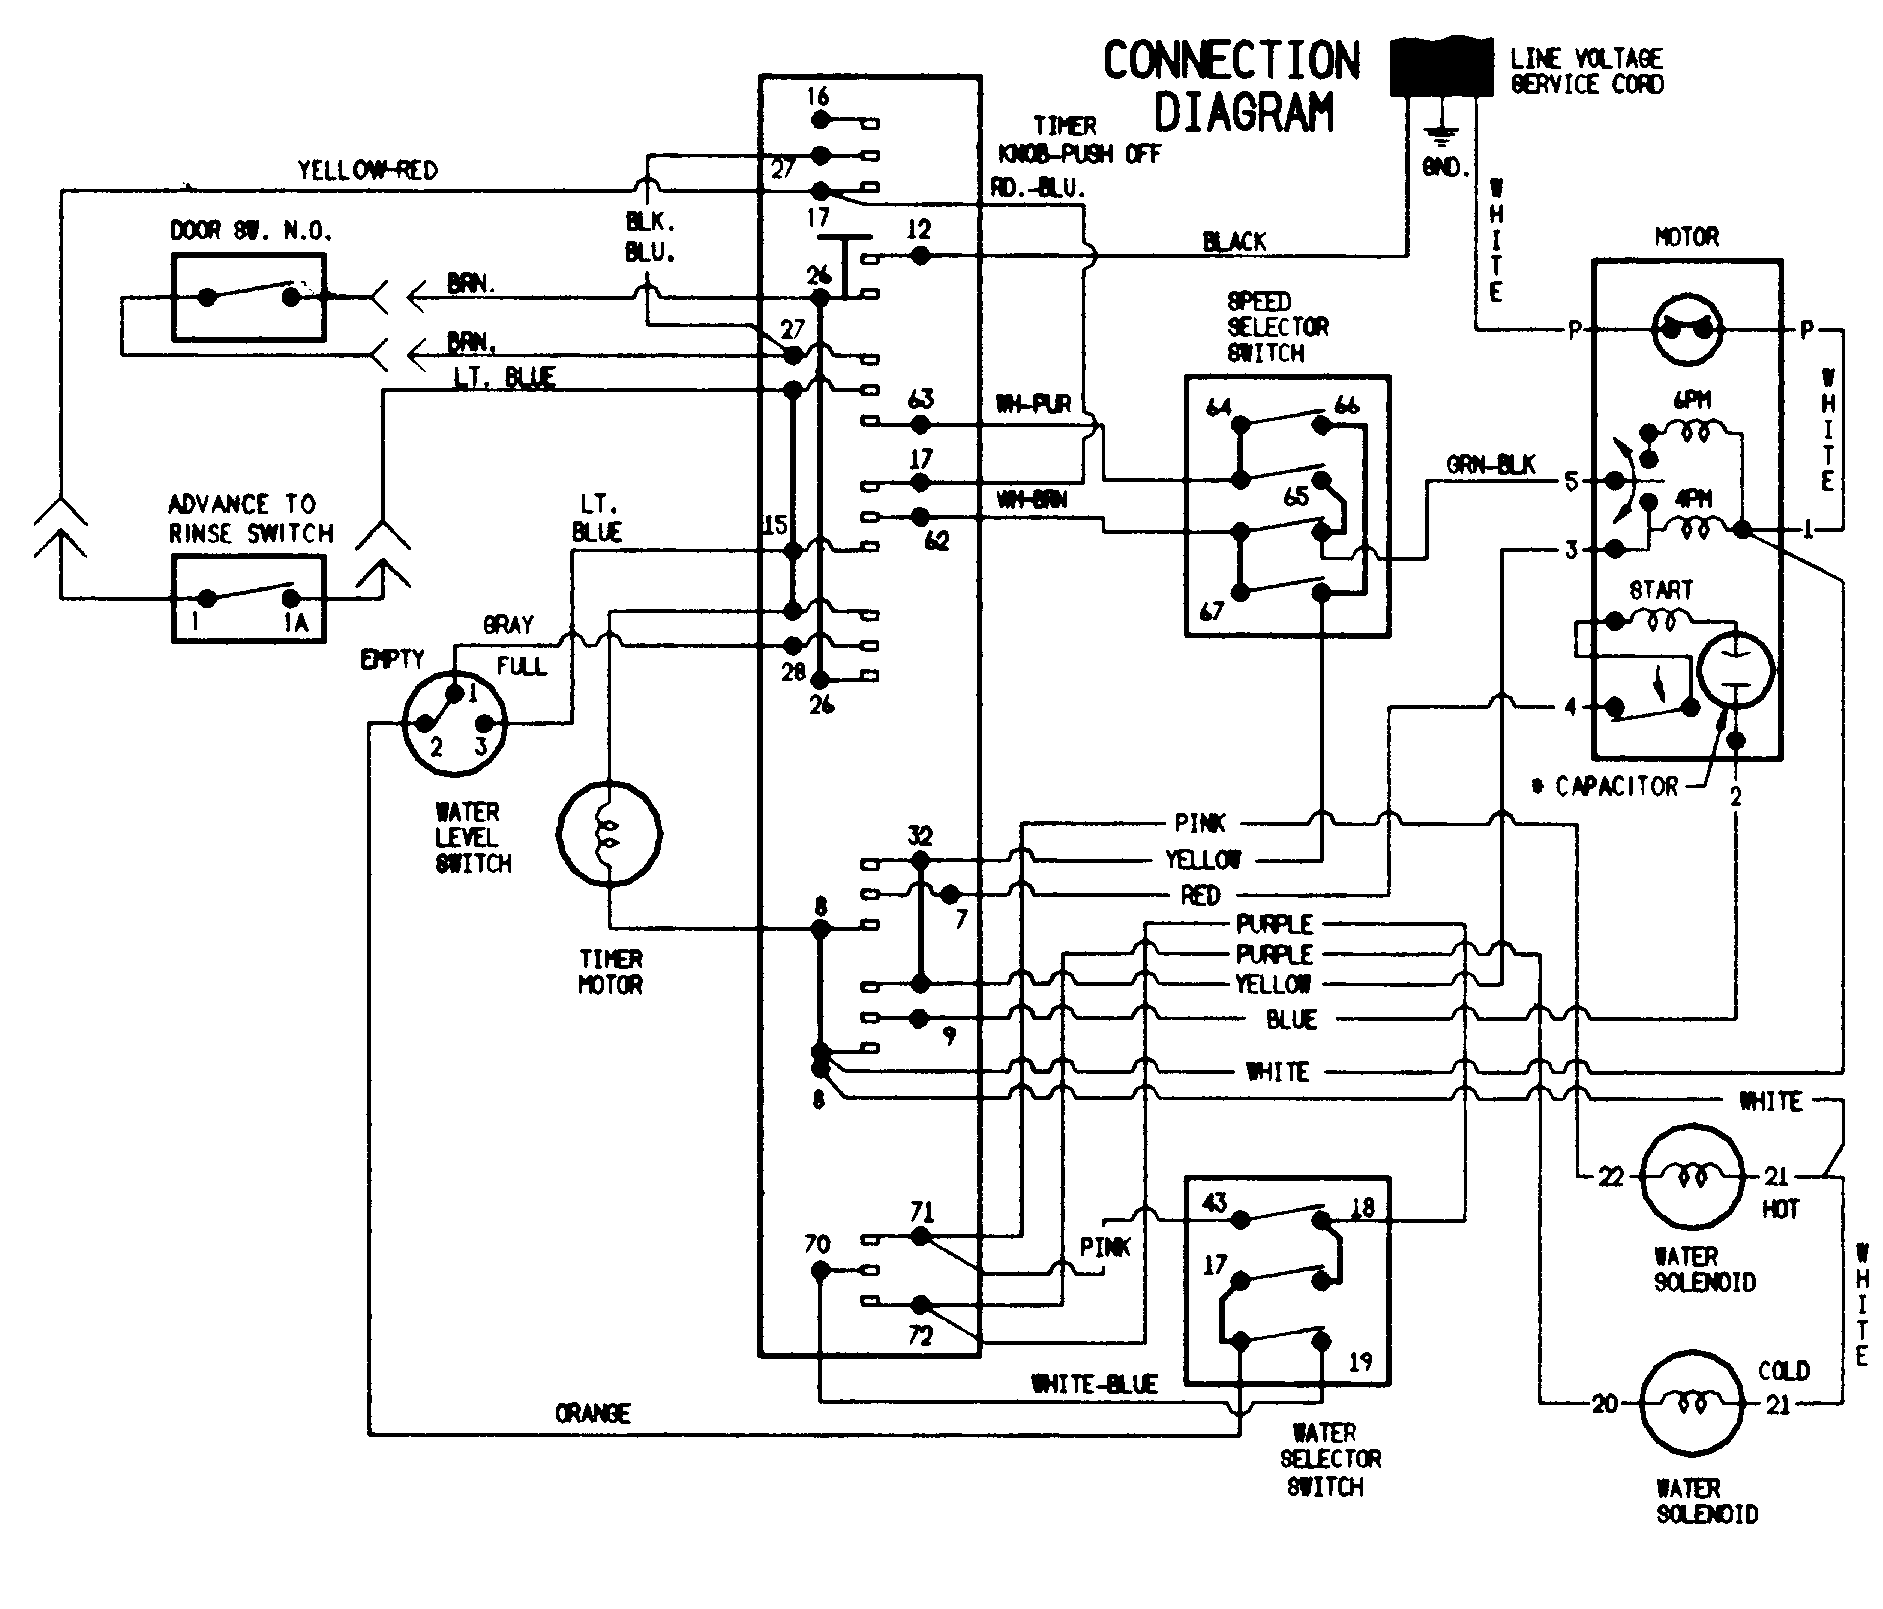 hight resolution of diagram for whirlpool washing machine moreover maytag washing whirlpool dishwasher motor wiring diagram